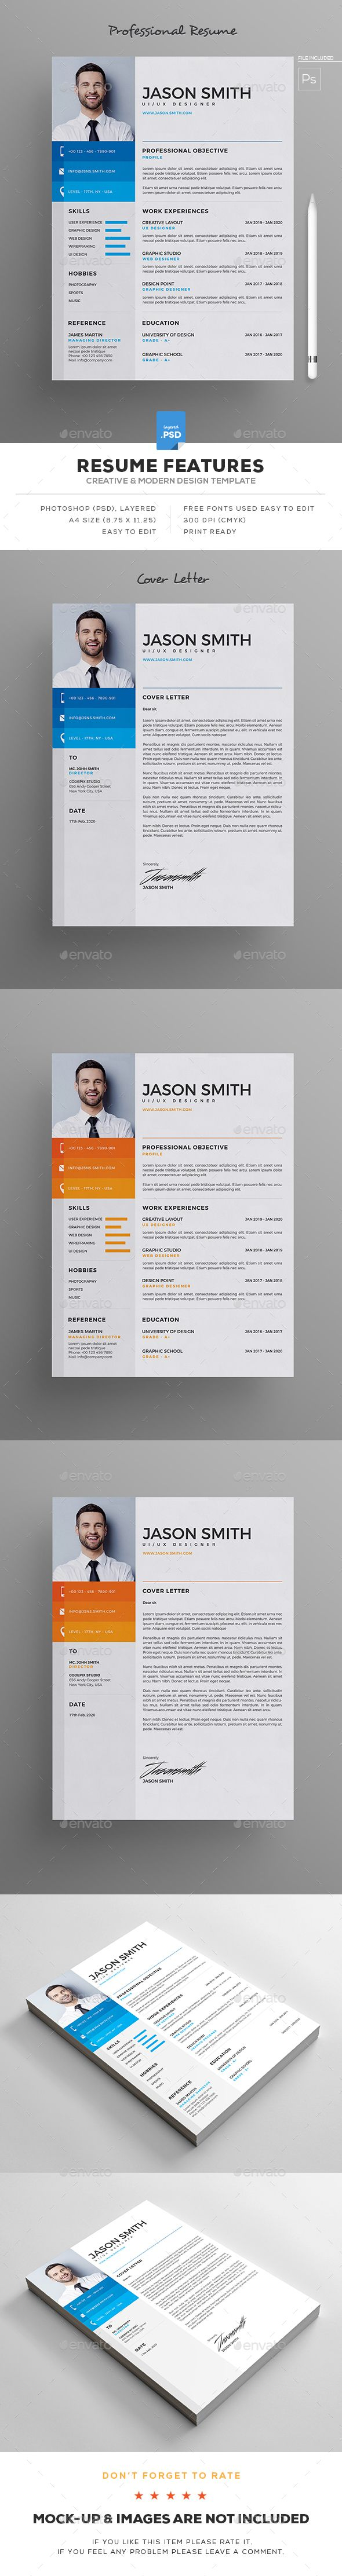 resume - Free Professional Resume Template